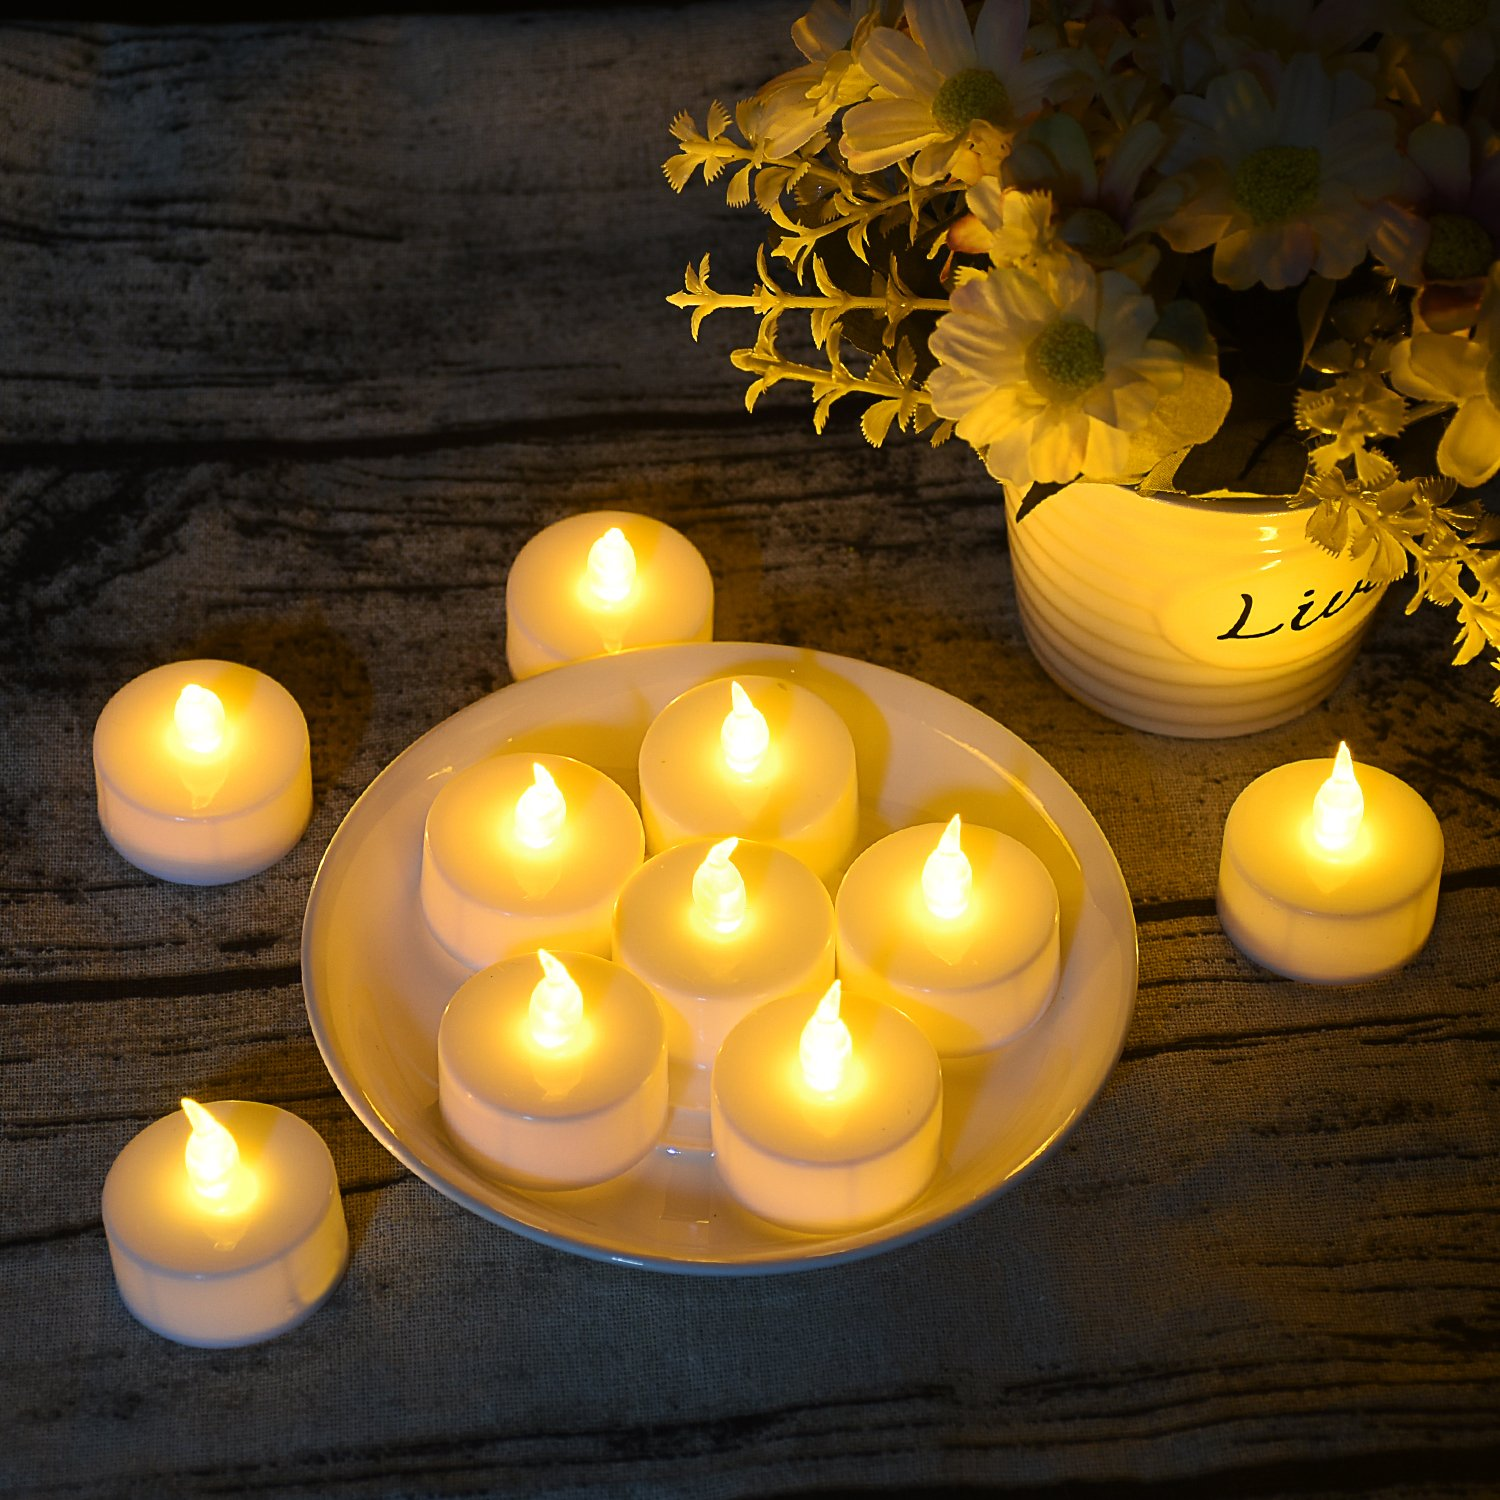 These LED tea lights are only $26 for 125!